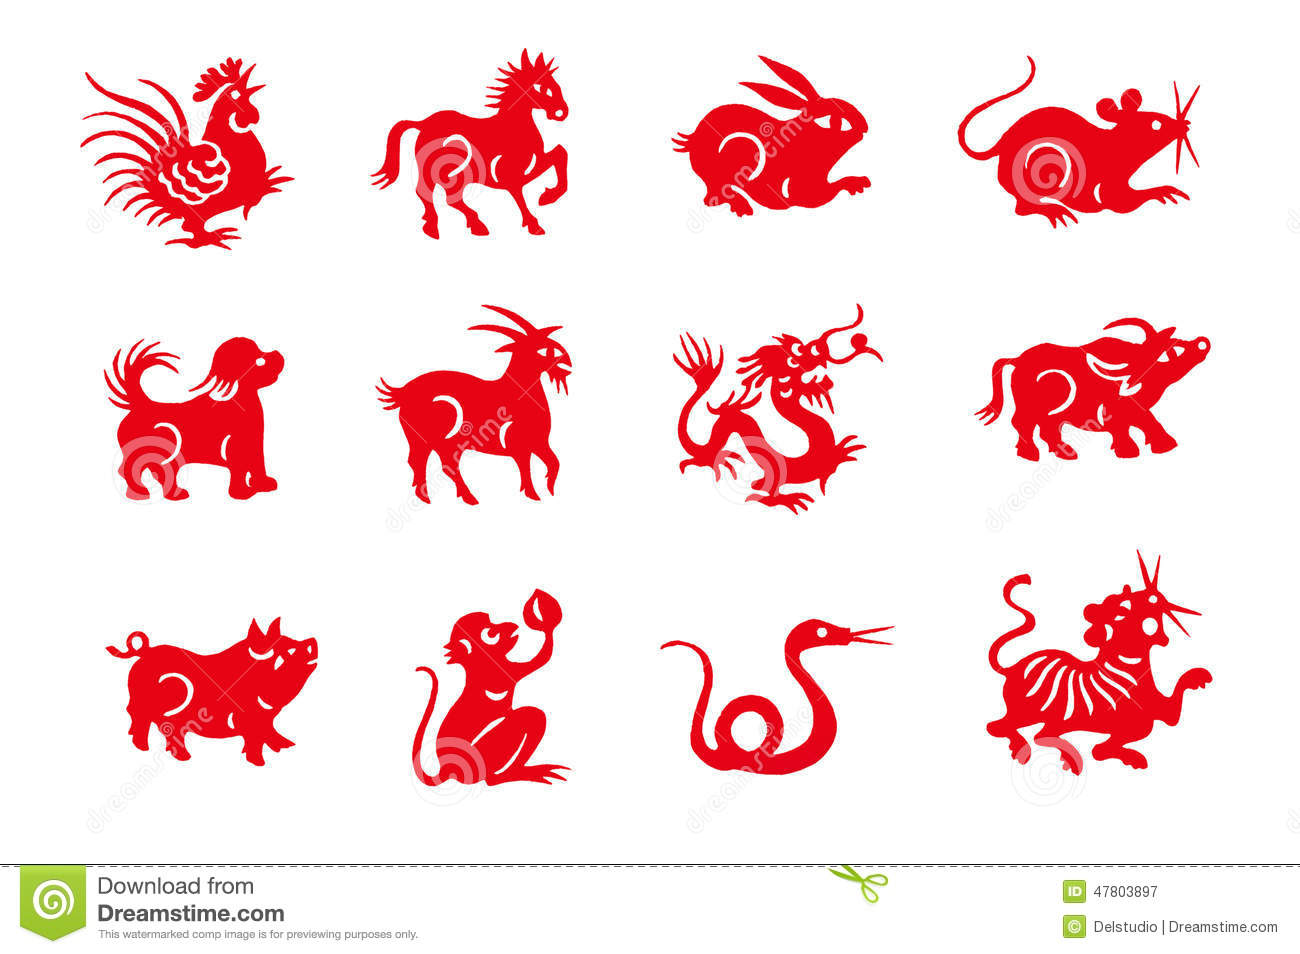 Zodiac stock images download 11229 photos red handmade cut paper chinese zodiac animals isolated on white background royalty free stock photography buycottarizona Image collections